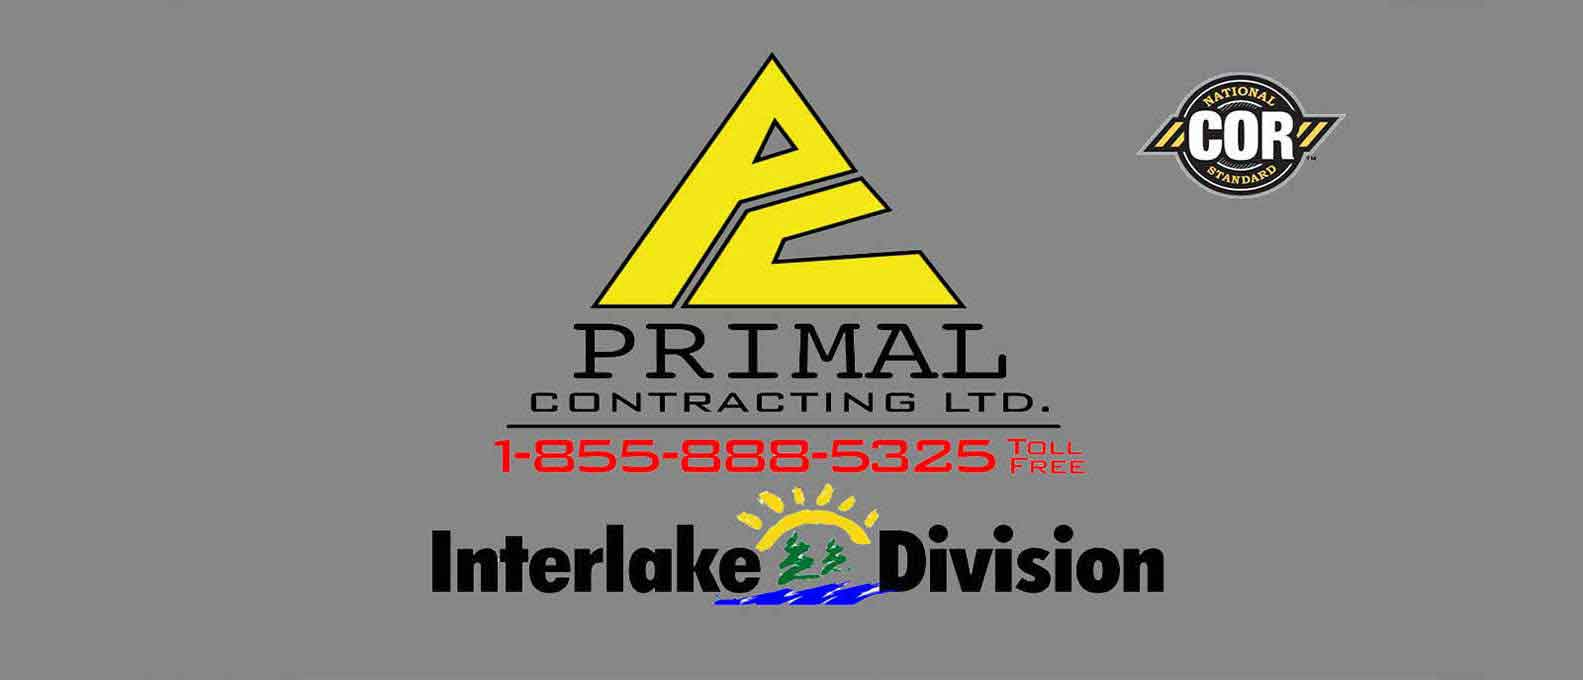 interlake-division